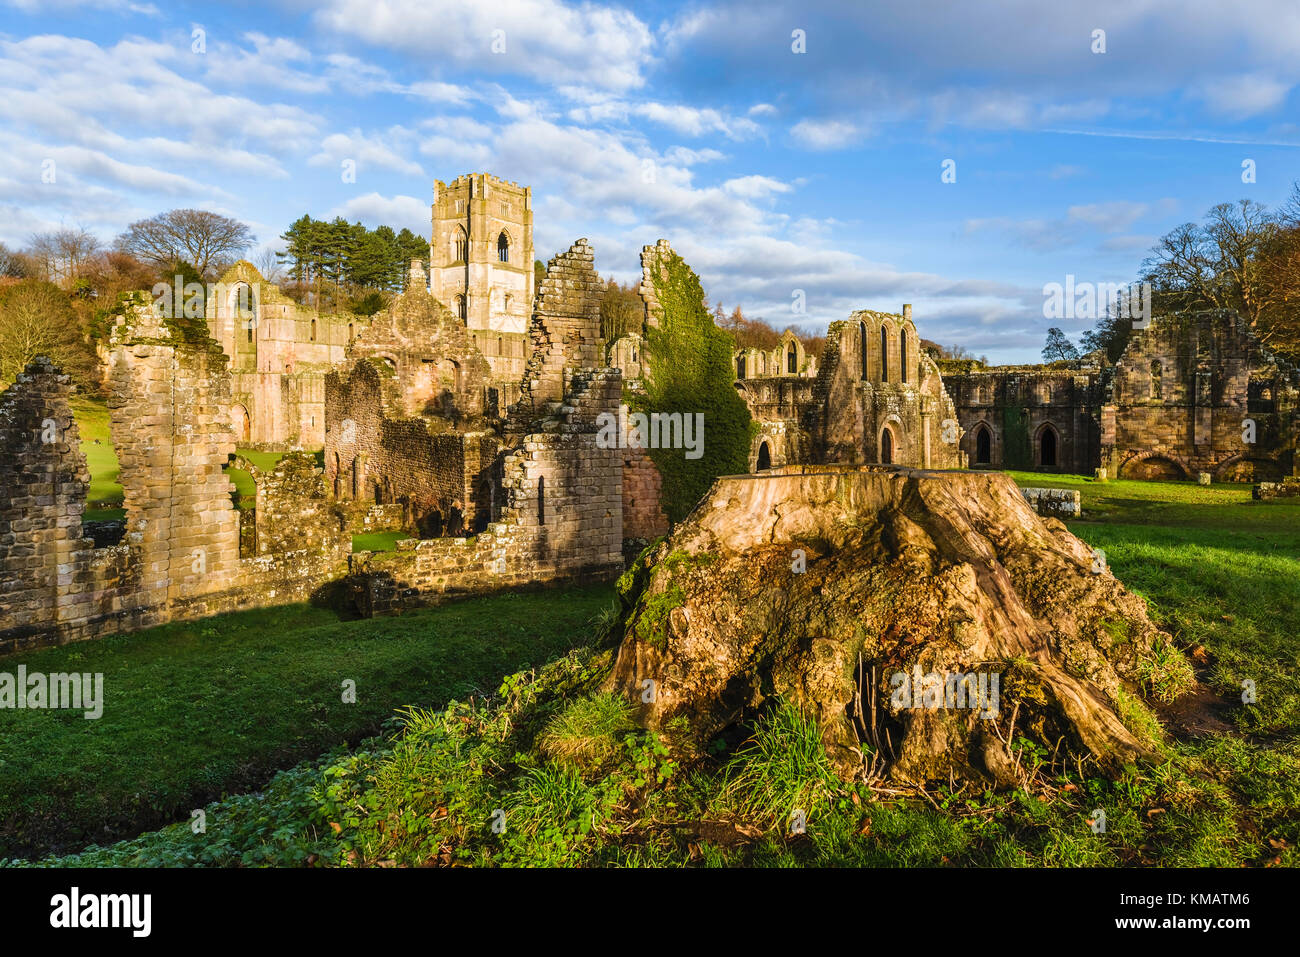 The ruins of Fountains Abbey on a fine autumn morning as viewed from across the river Skell near Ripon, Yorkshire, - Stock Image